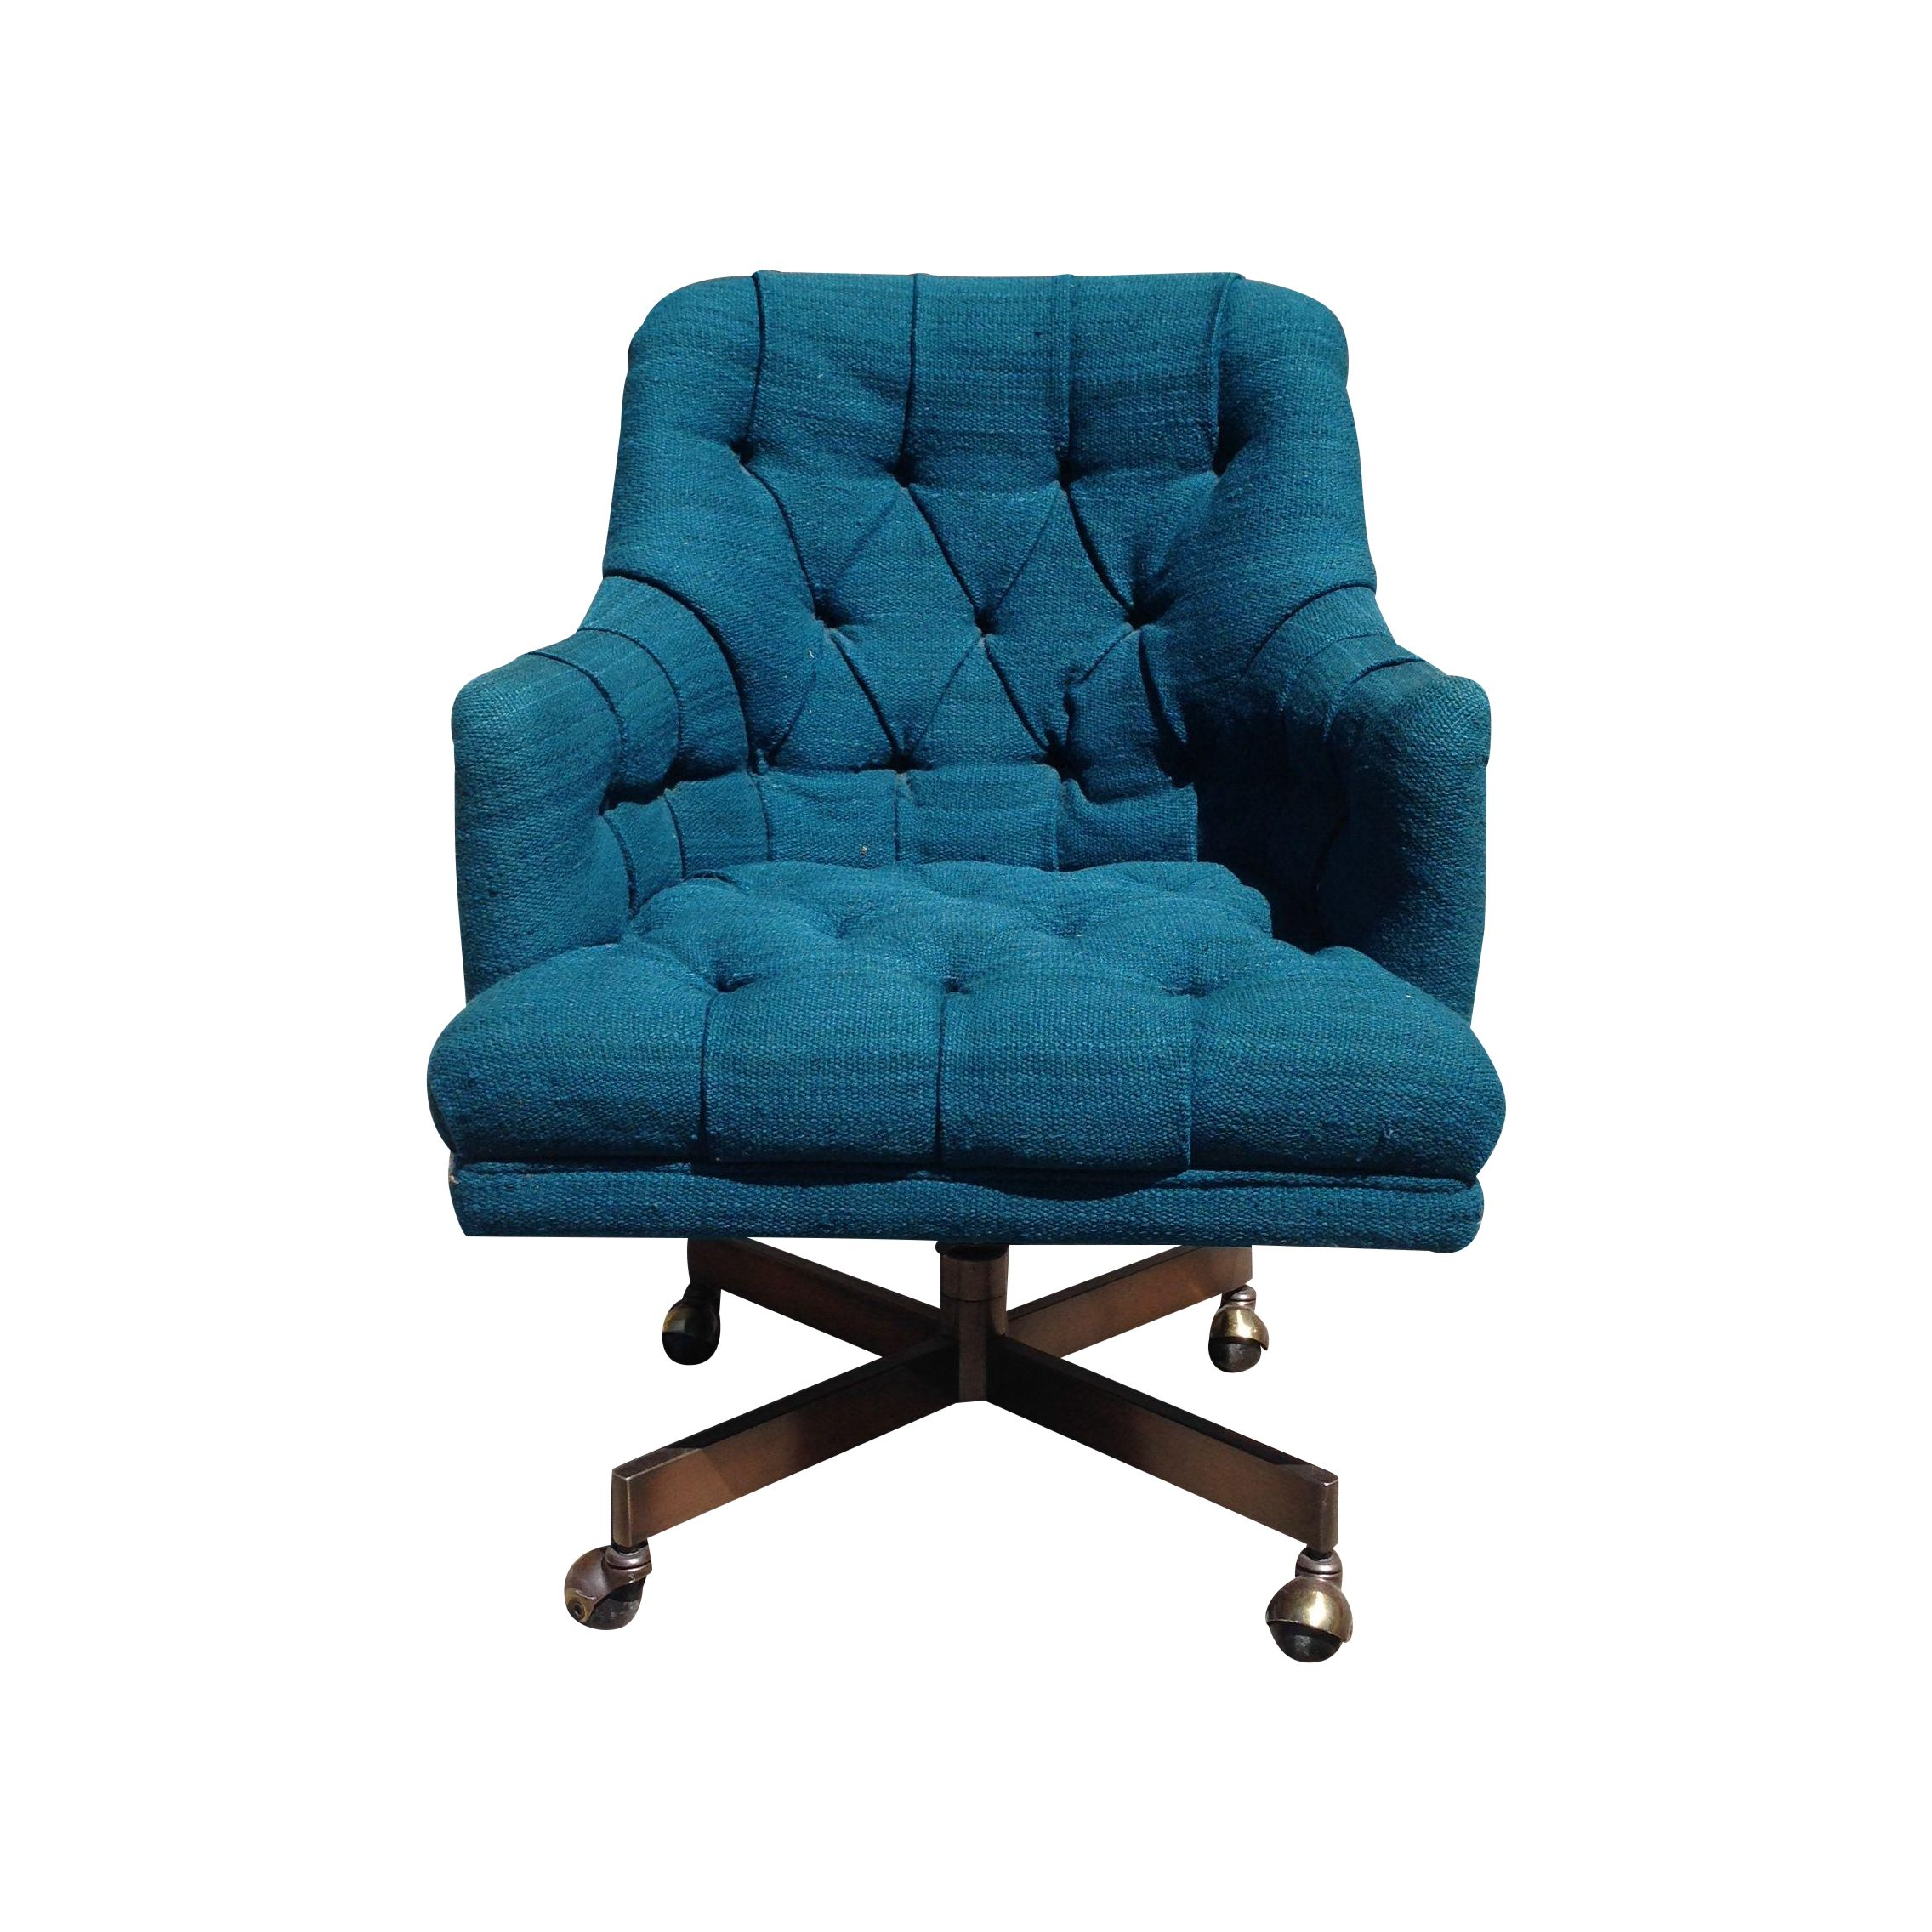 Oversized Teal Tufted fice Chair